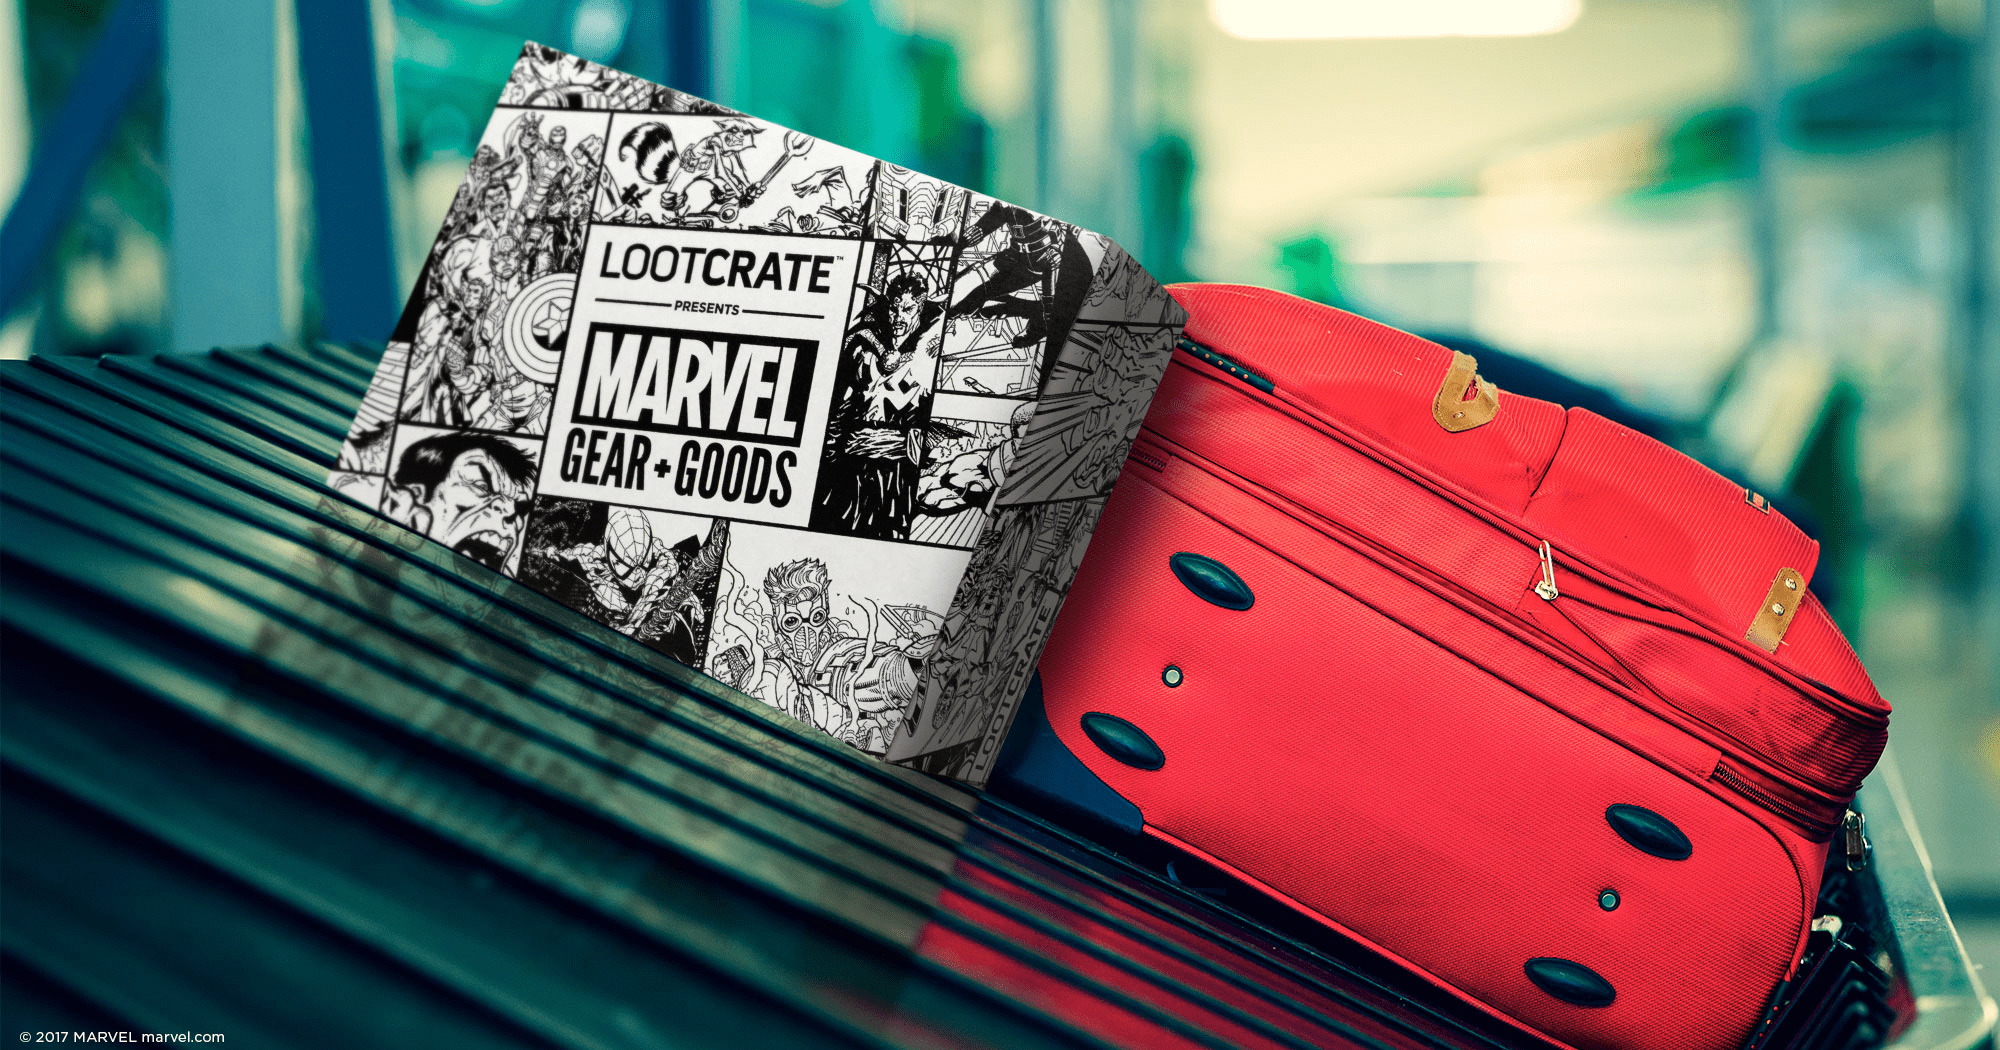 Loot Crate Marvel Gear + Goods January 2018 Full Spoilers!